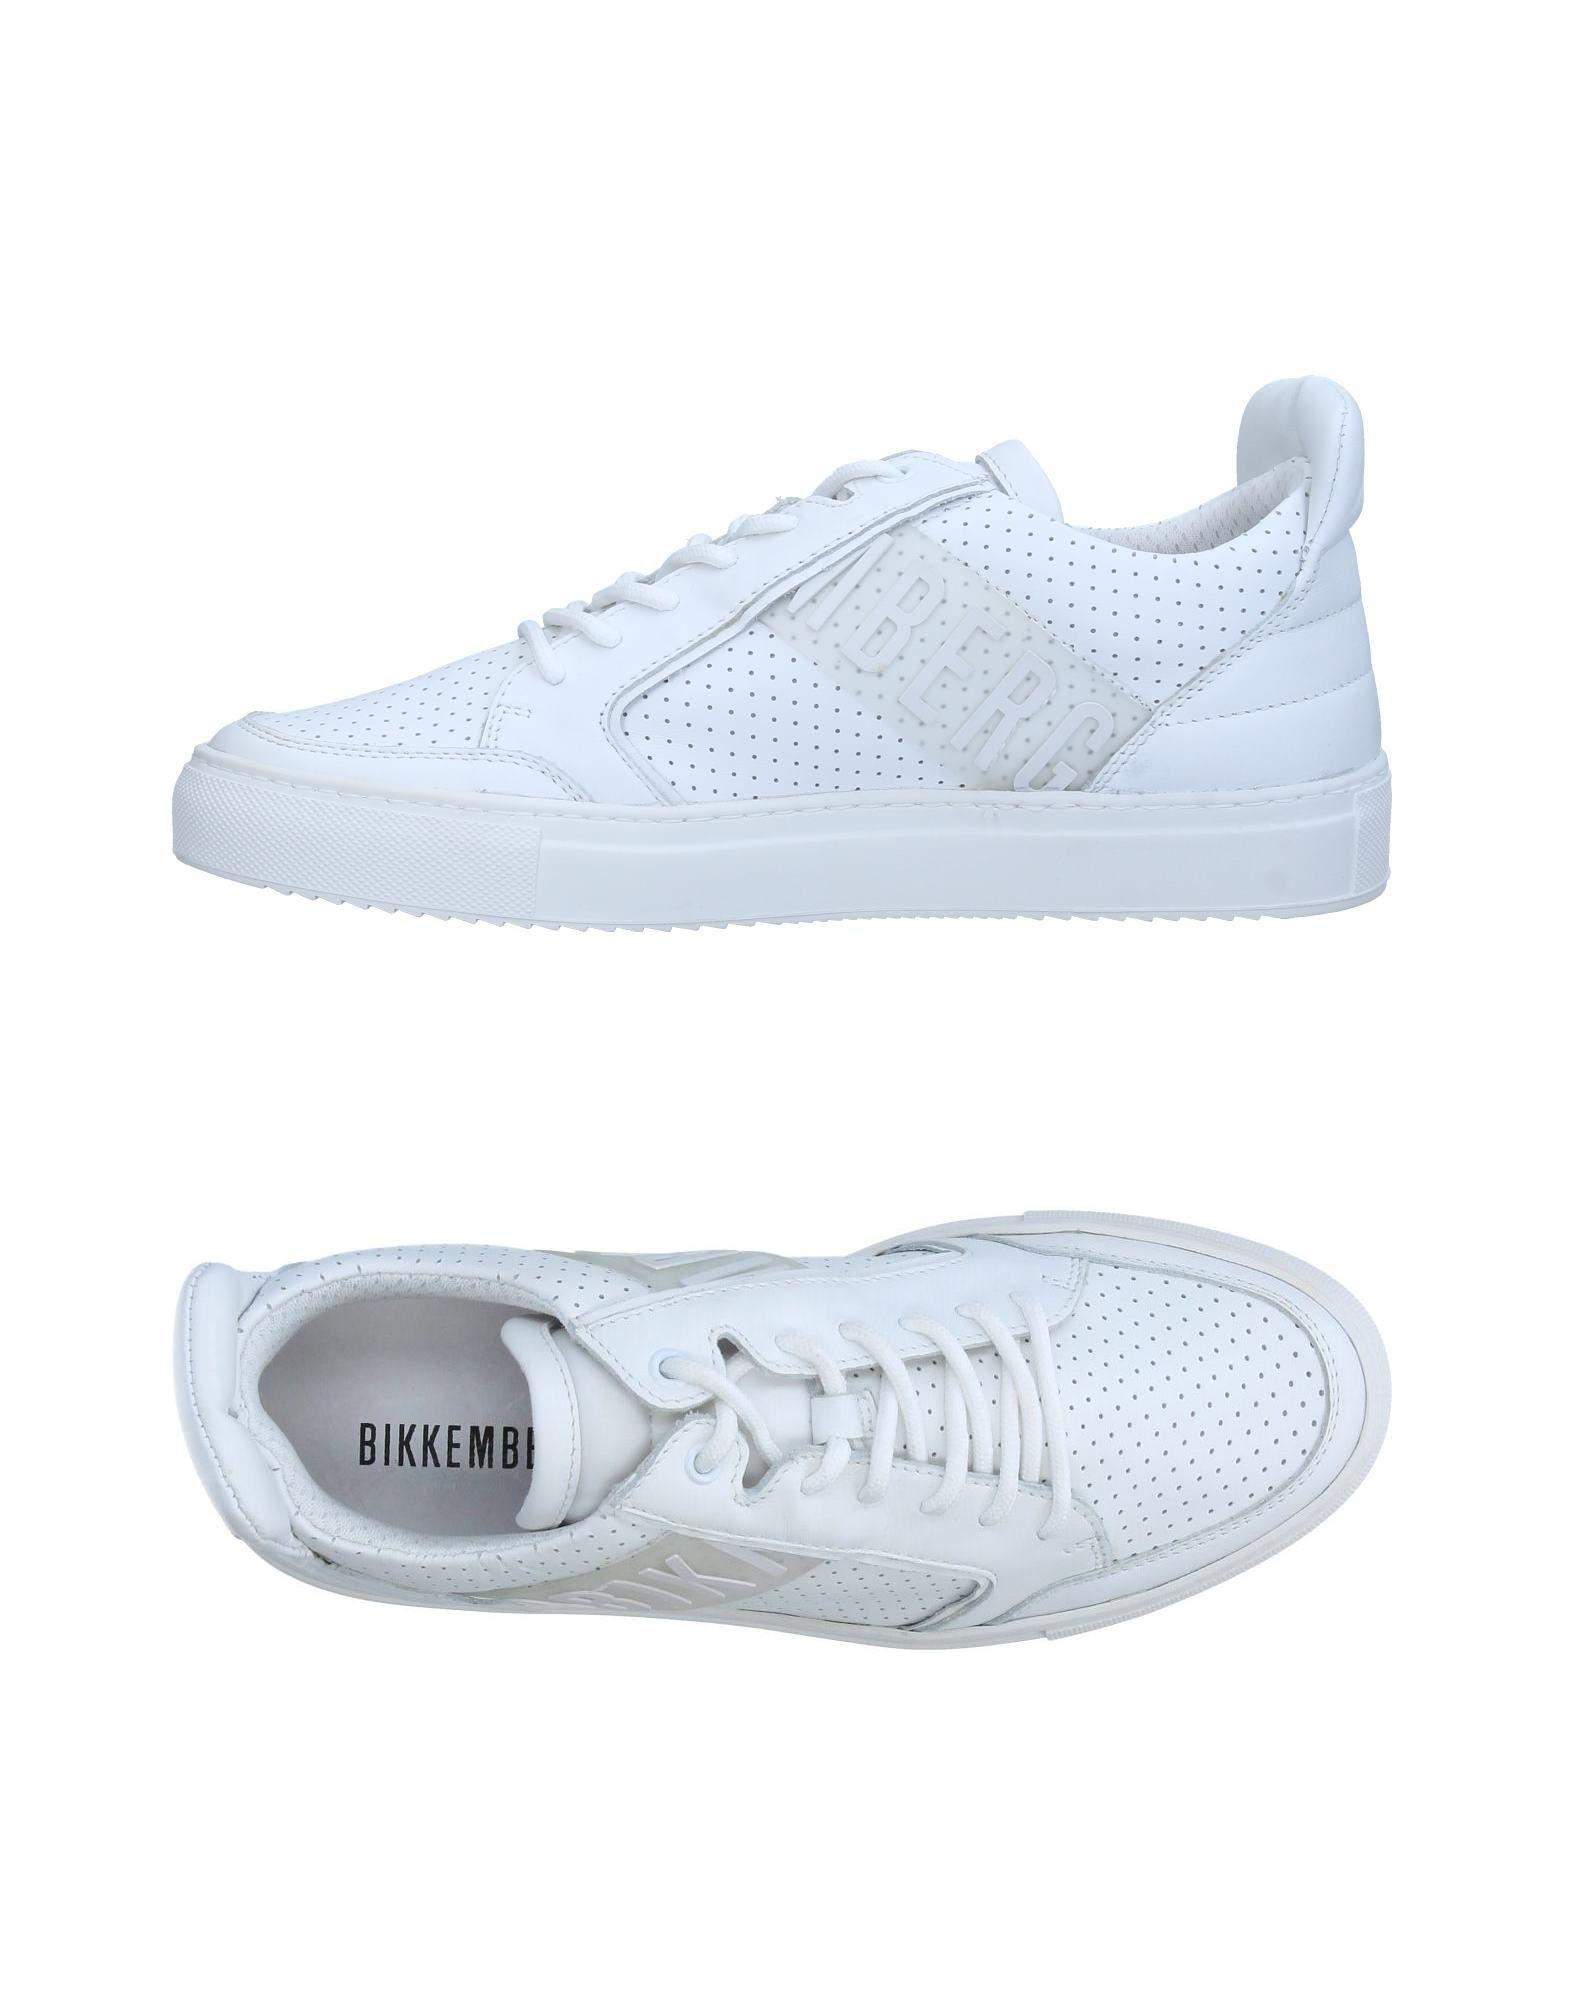 a5595e1d87971 Lyst - Bikkembergs Low-tops   Sneakers in White for Men - Save 14%